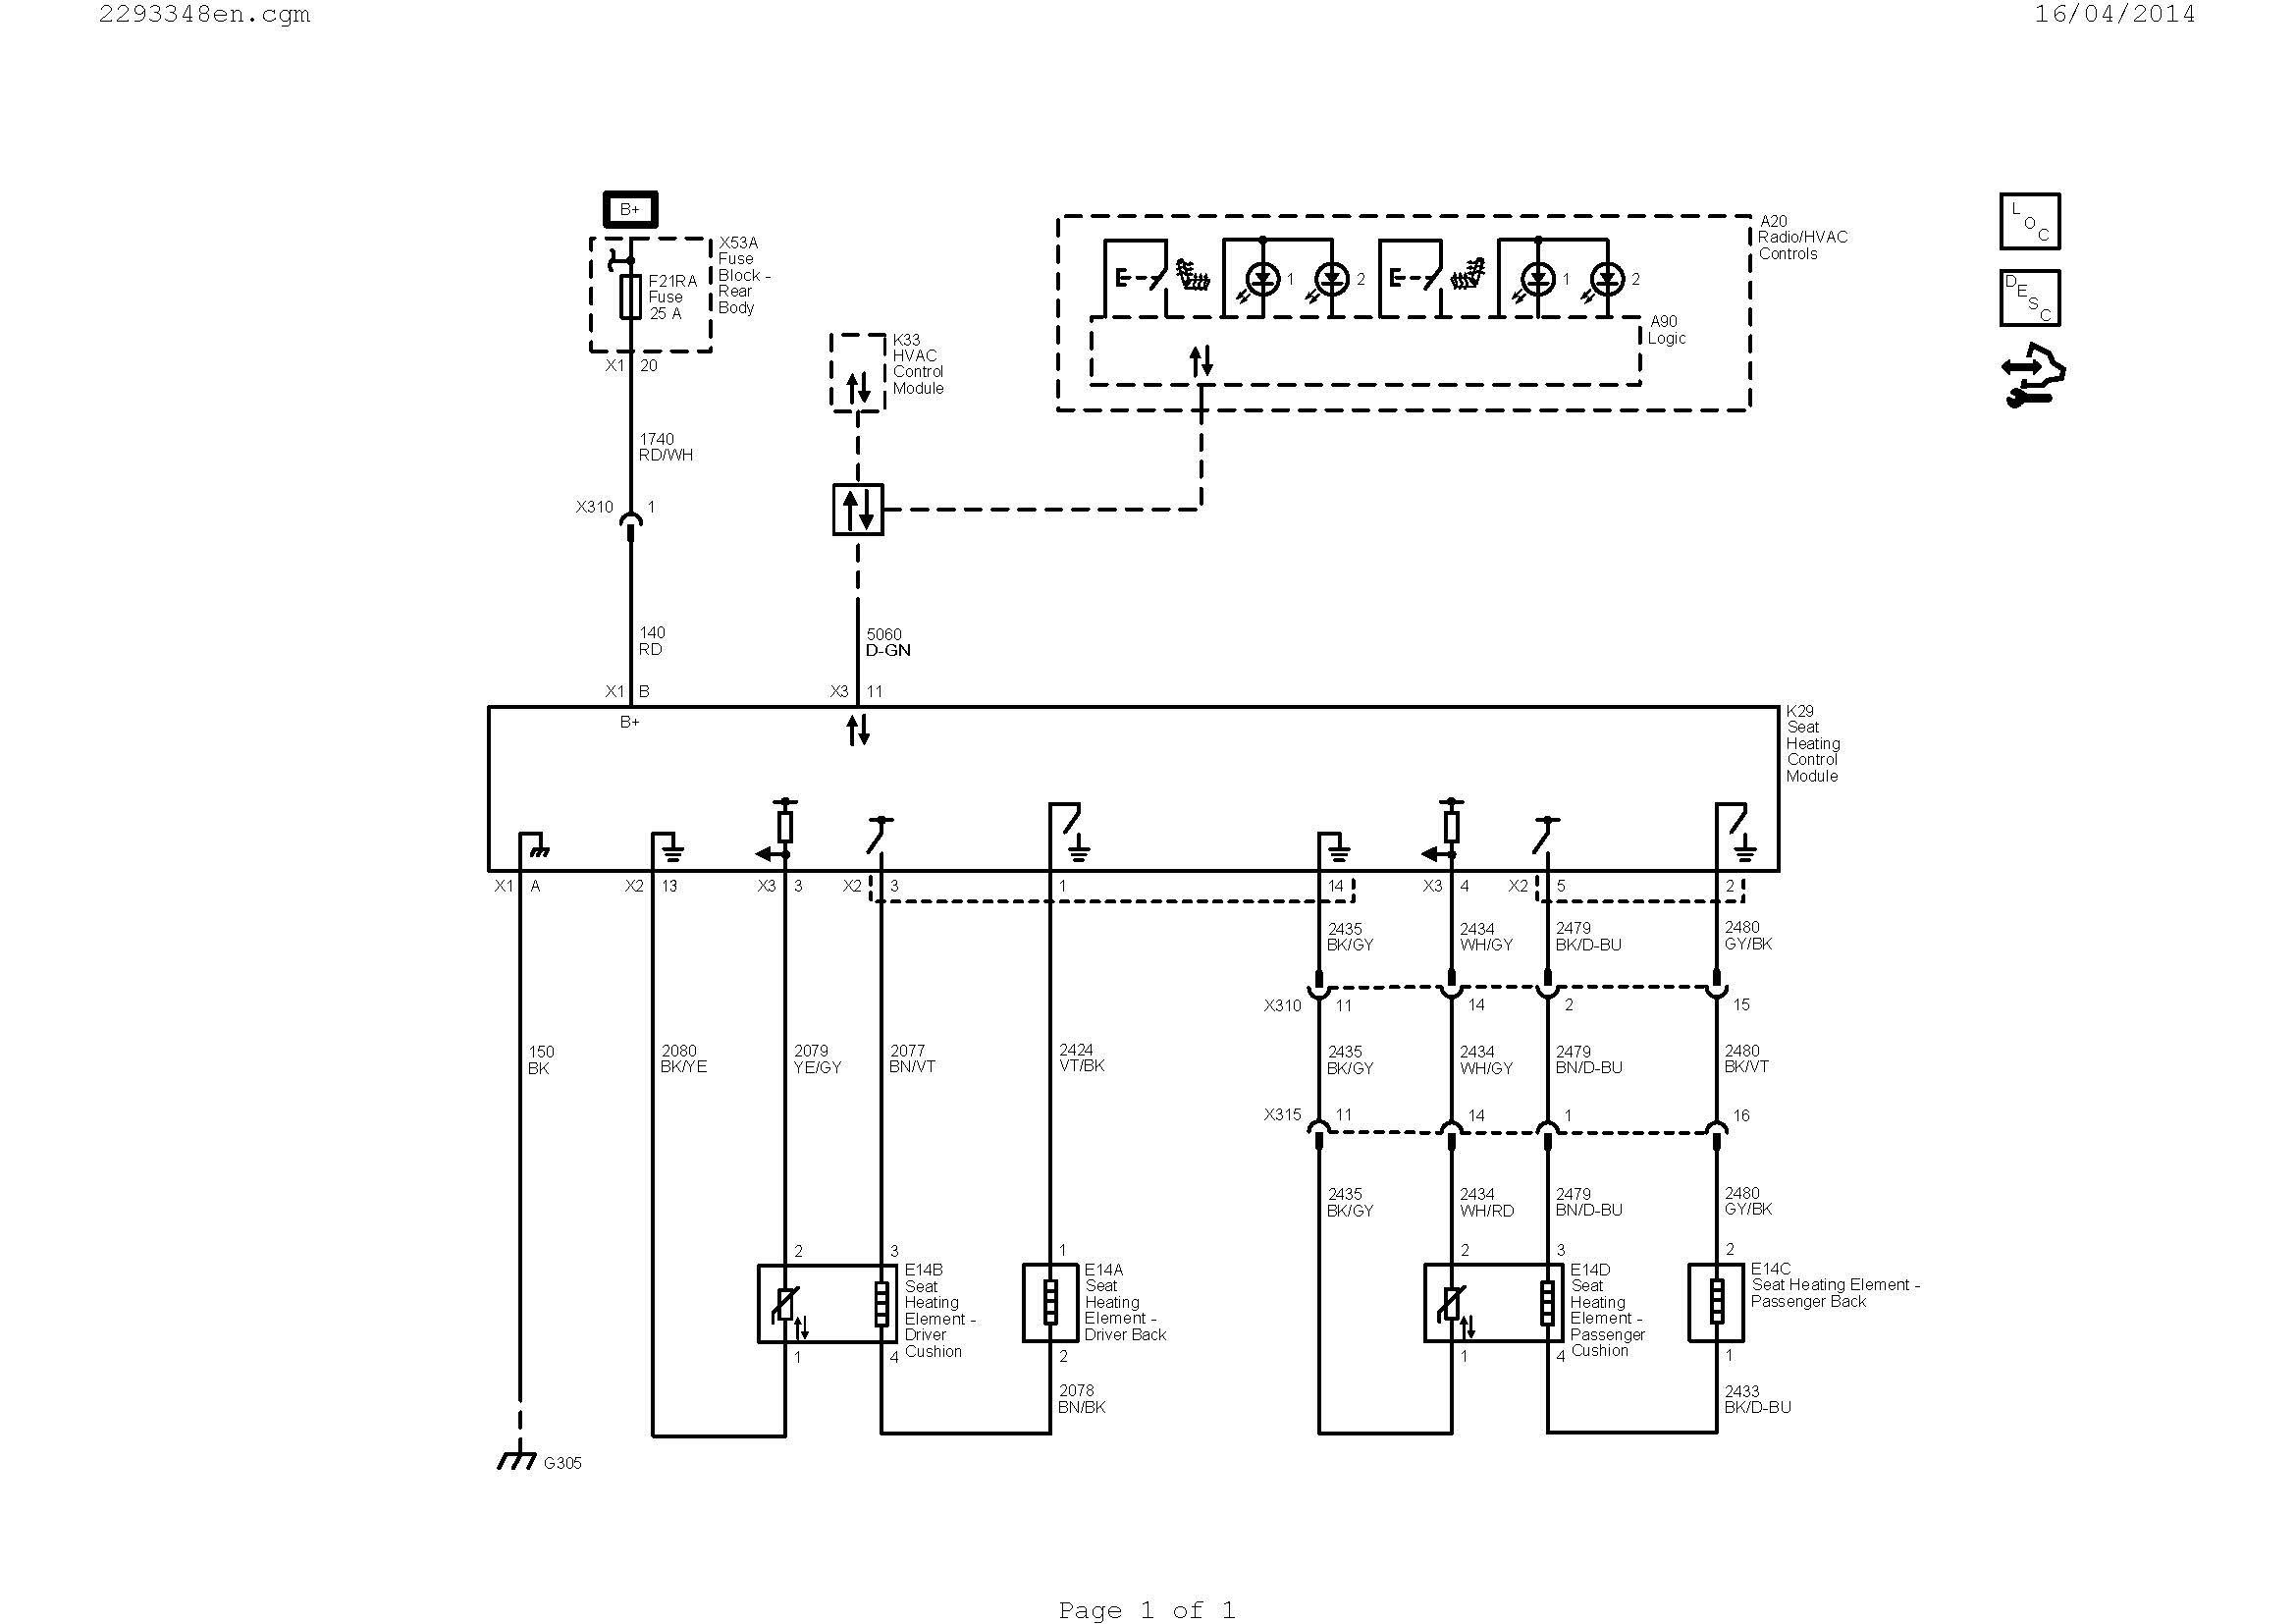 Electric Fuel Pump Relay Wiring Diagram Wiring Diagram Relay Inspirationa Wire Diagram for Best Hvac Of Electric Fuel Pump Relay Wiring Diagram